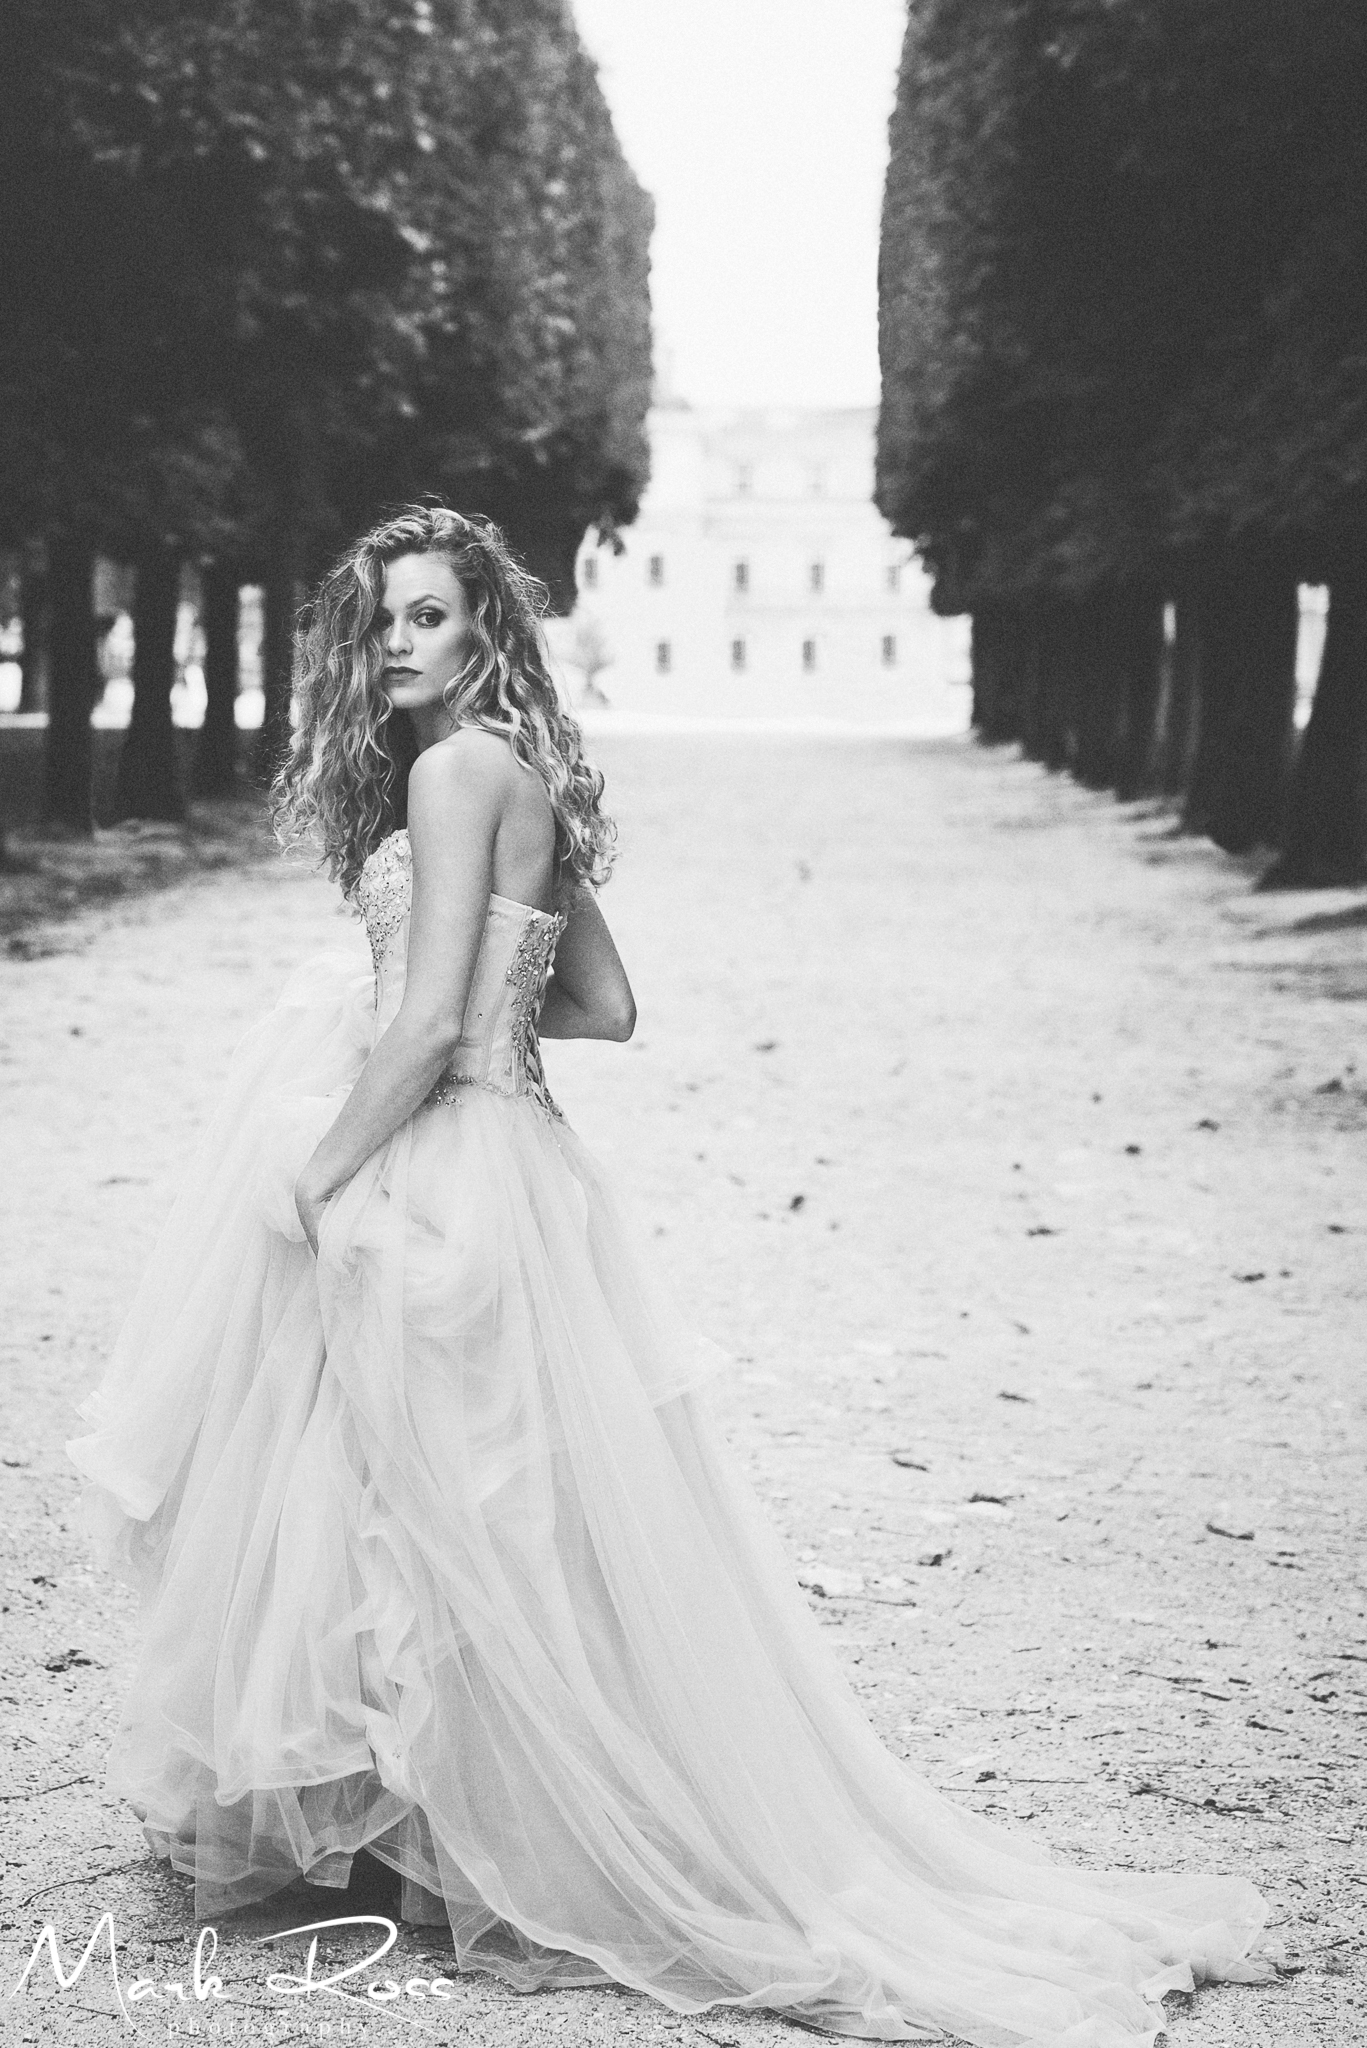 I still sometimes cannot believe that this image exists for one of my own clients. The first time I ever saw images from the Jardin du Luxembourg in Paris, it was from a photoshoot for Vera Wang. I was certain I could never plant my feet in the same place as that fancy photographer…but by putting one foot in front of the other I proved myself wrong, and eventually created this.